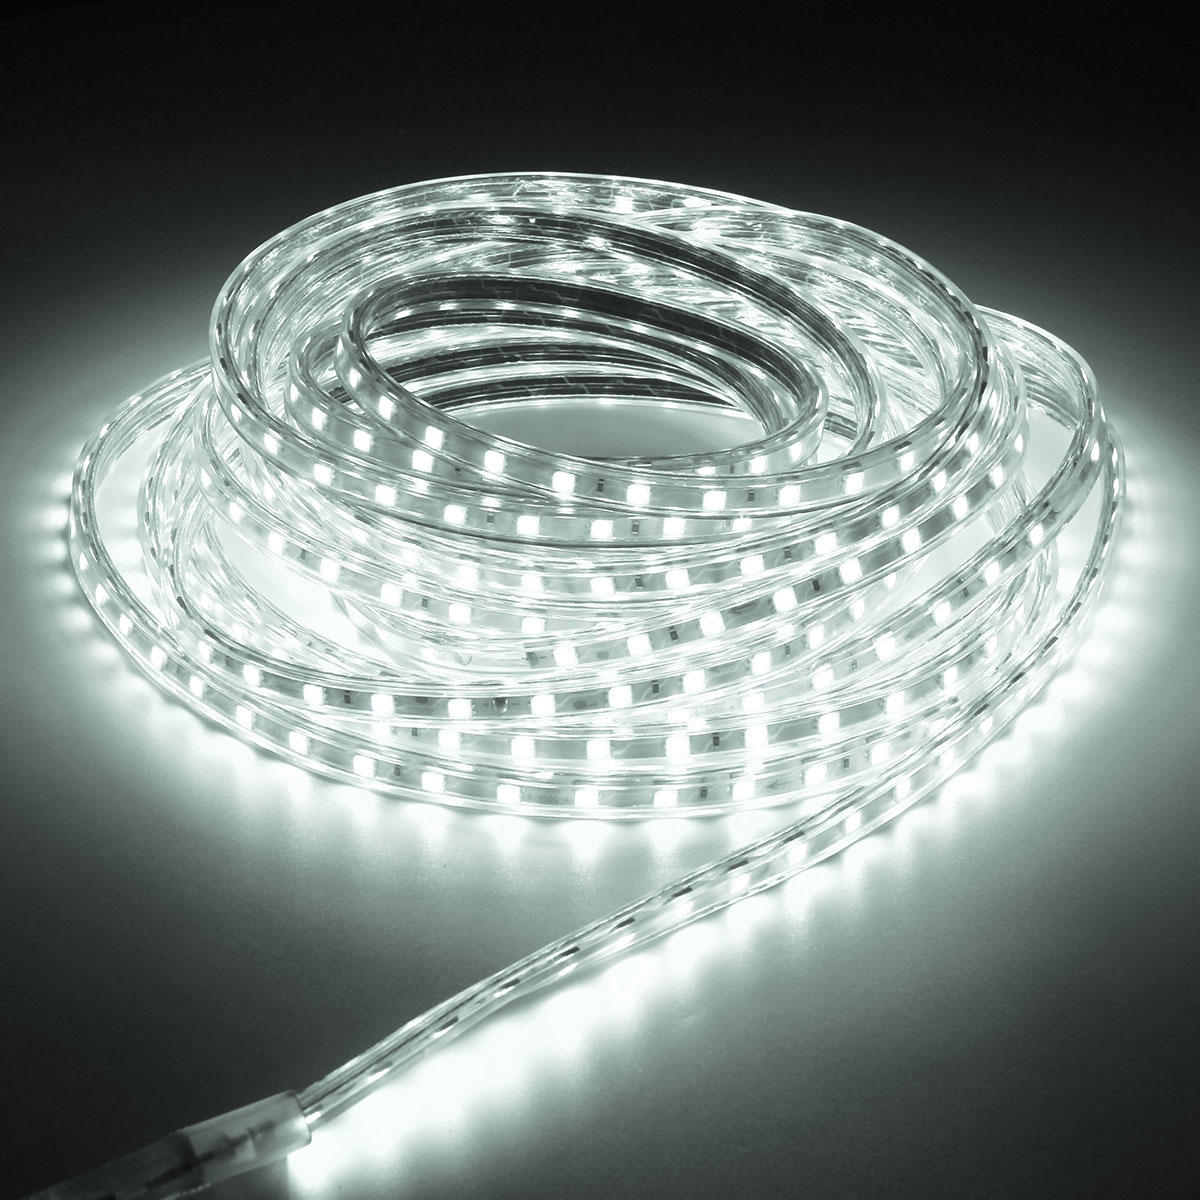 1M 5M WS2813 RGB Dream Color Non-waterproof LED Pixel Strip Light for Holiday Party Decor DC5V - 7